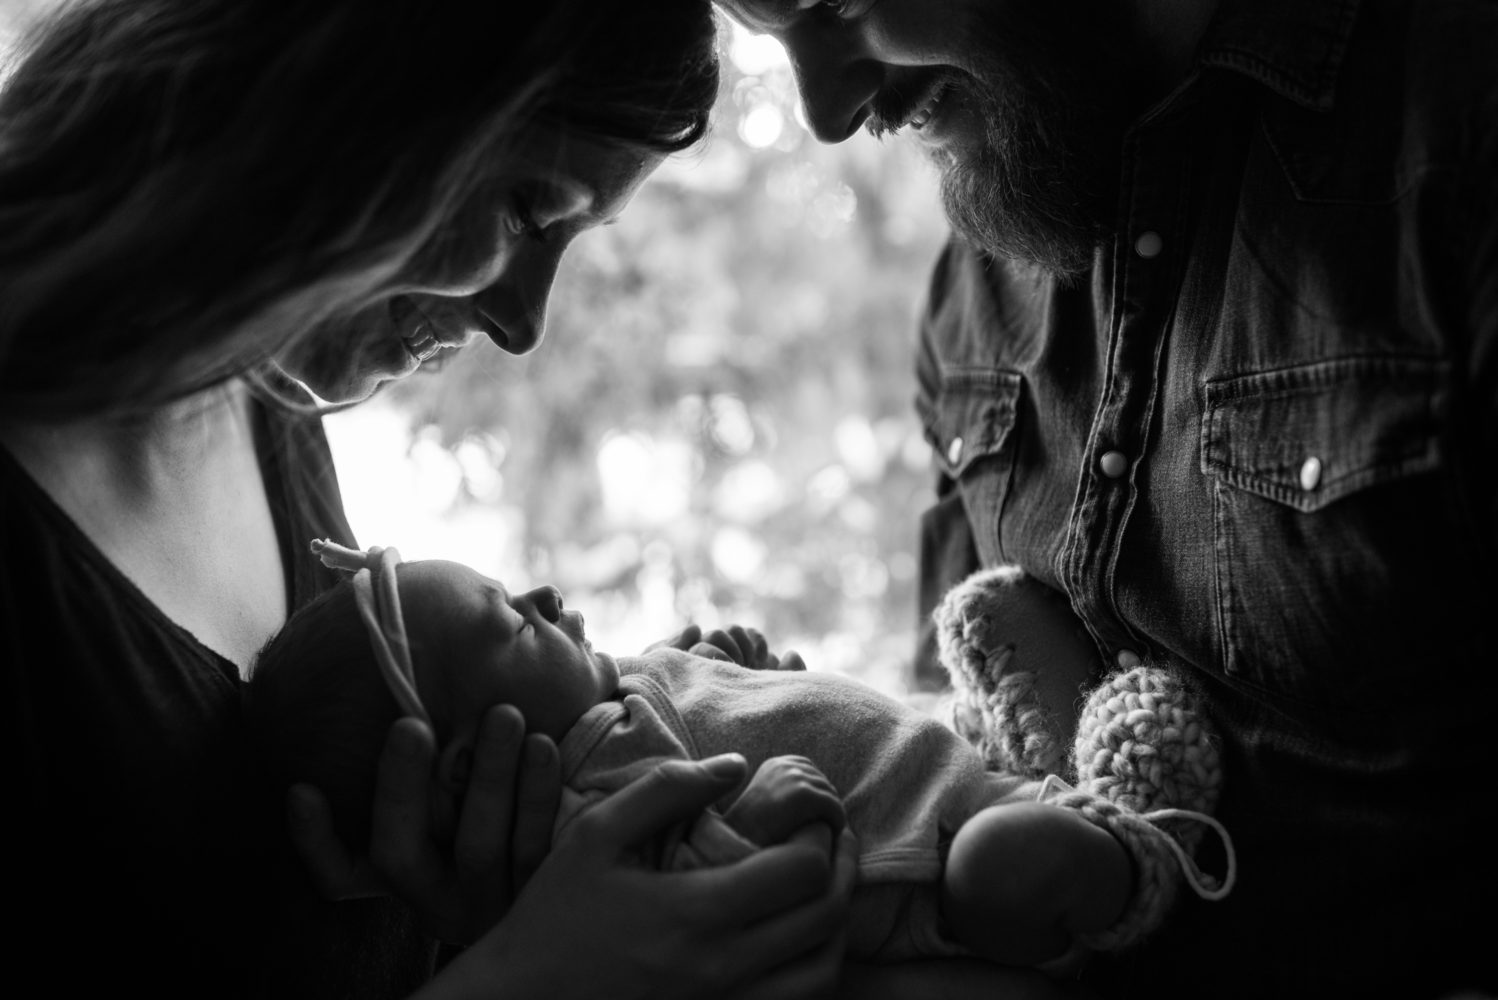 A stunning black and white photograph of parents adoring their newborn baby girl | 3Haus Photographics